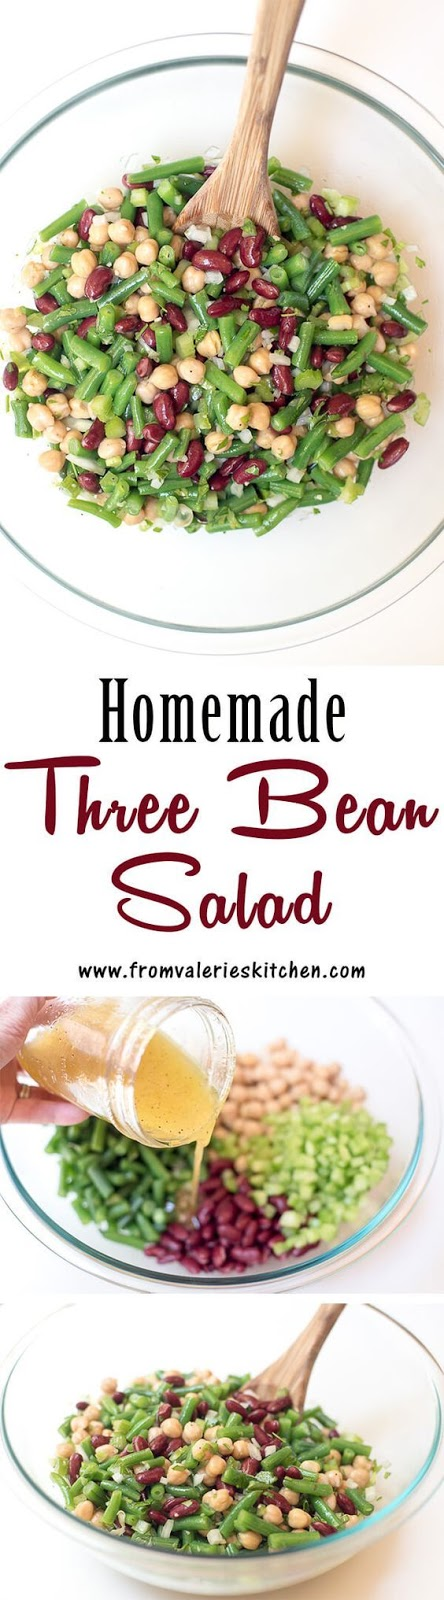 This fresh Homemade Three Bean Salad is so much tastier than the store bought variety. The dressing gives it a sweet, vinegary bite that is irresistibly good.